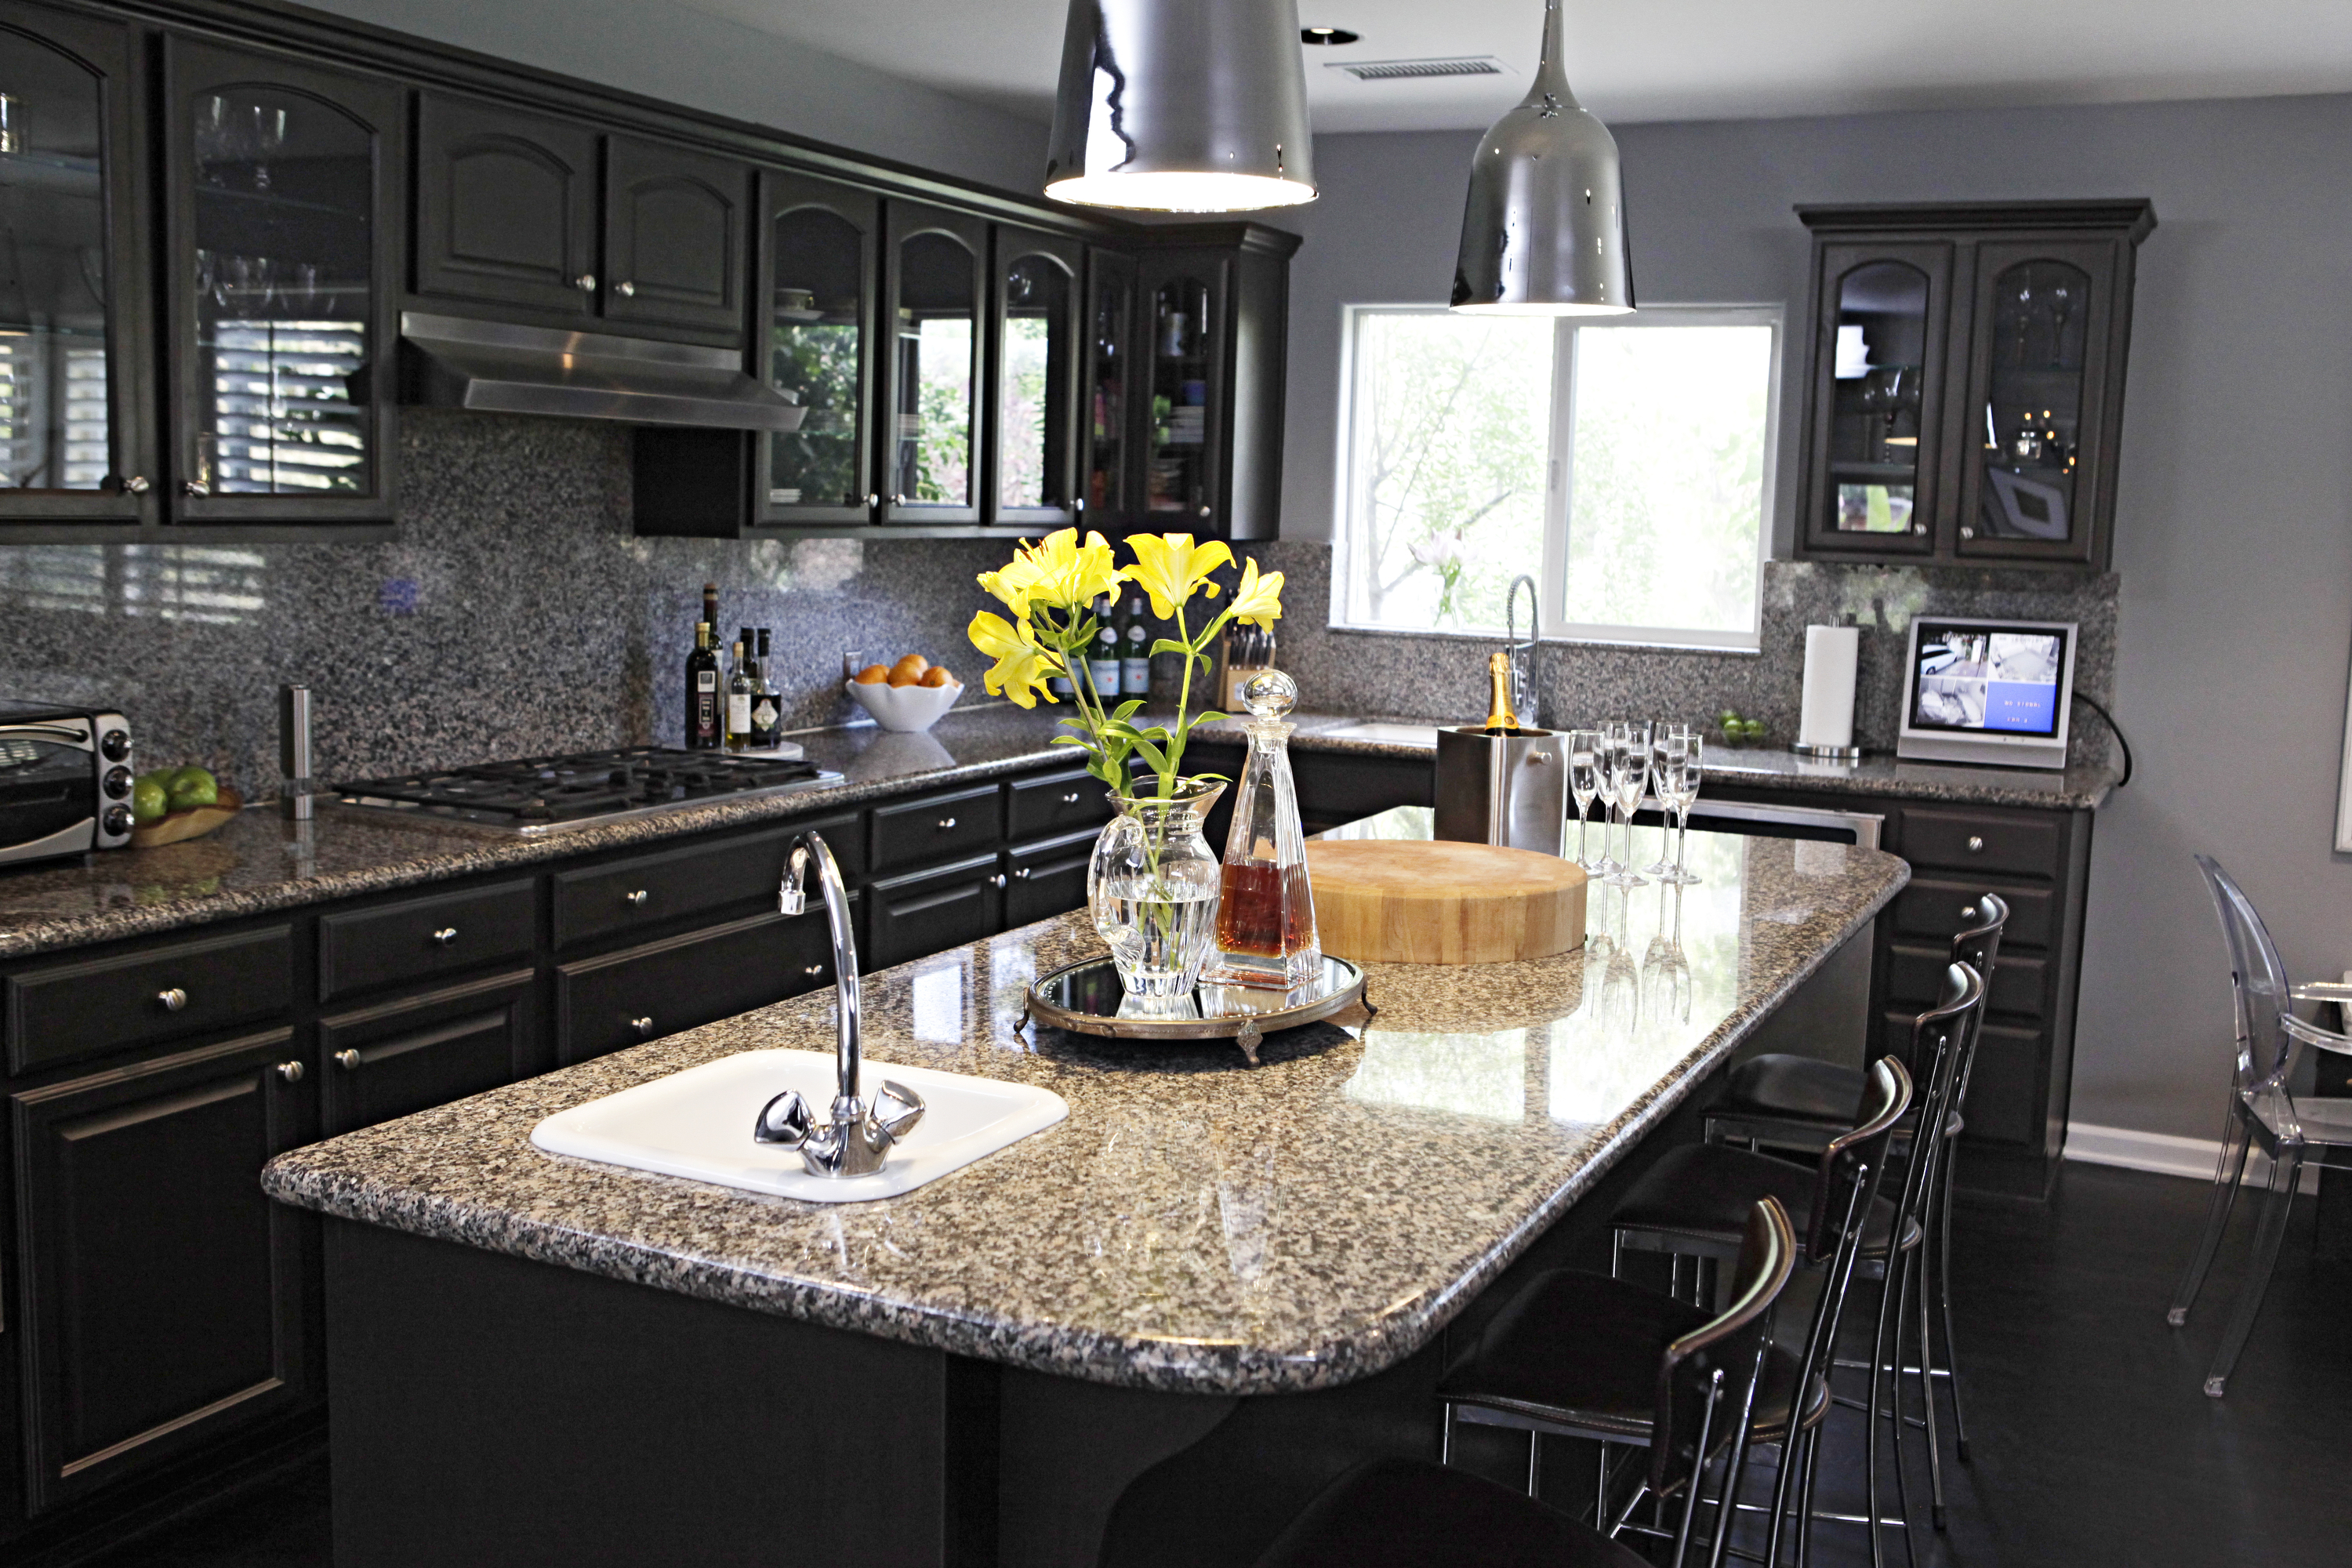 How Granite Countertops Became An American Obsession Vox